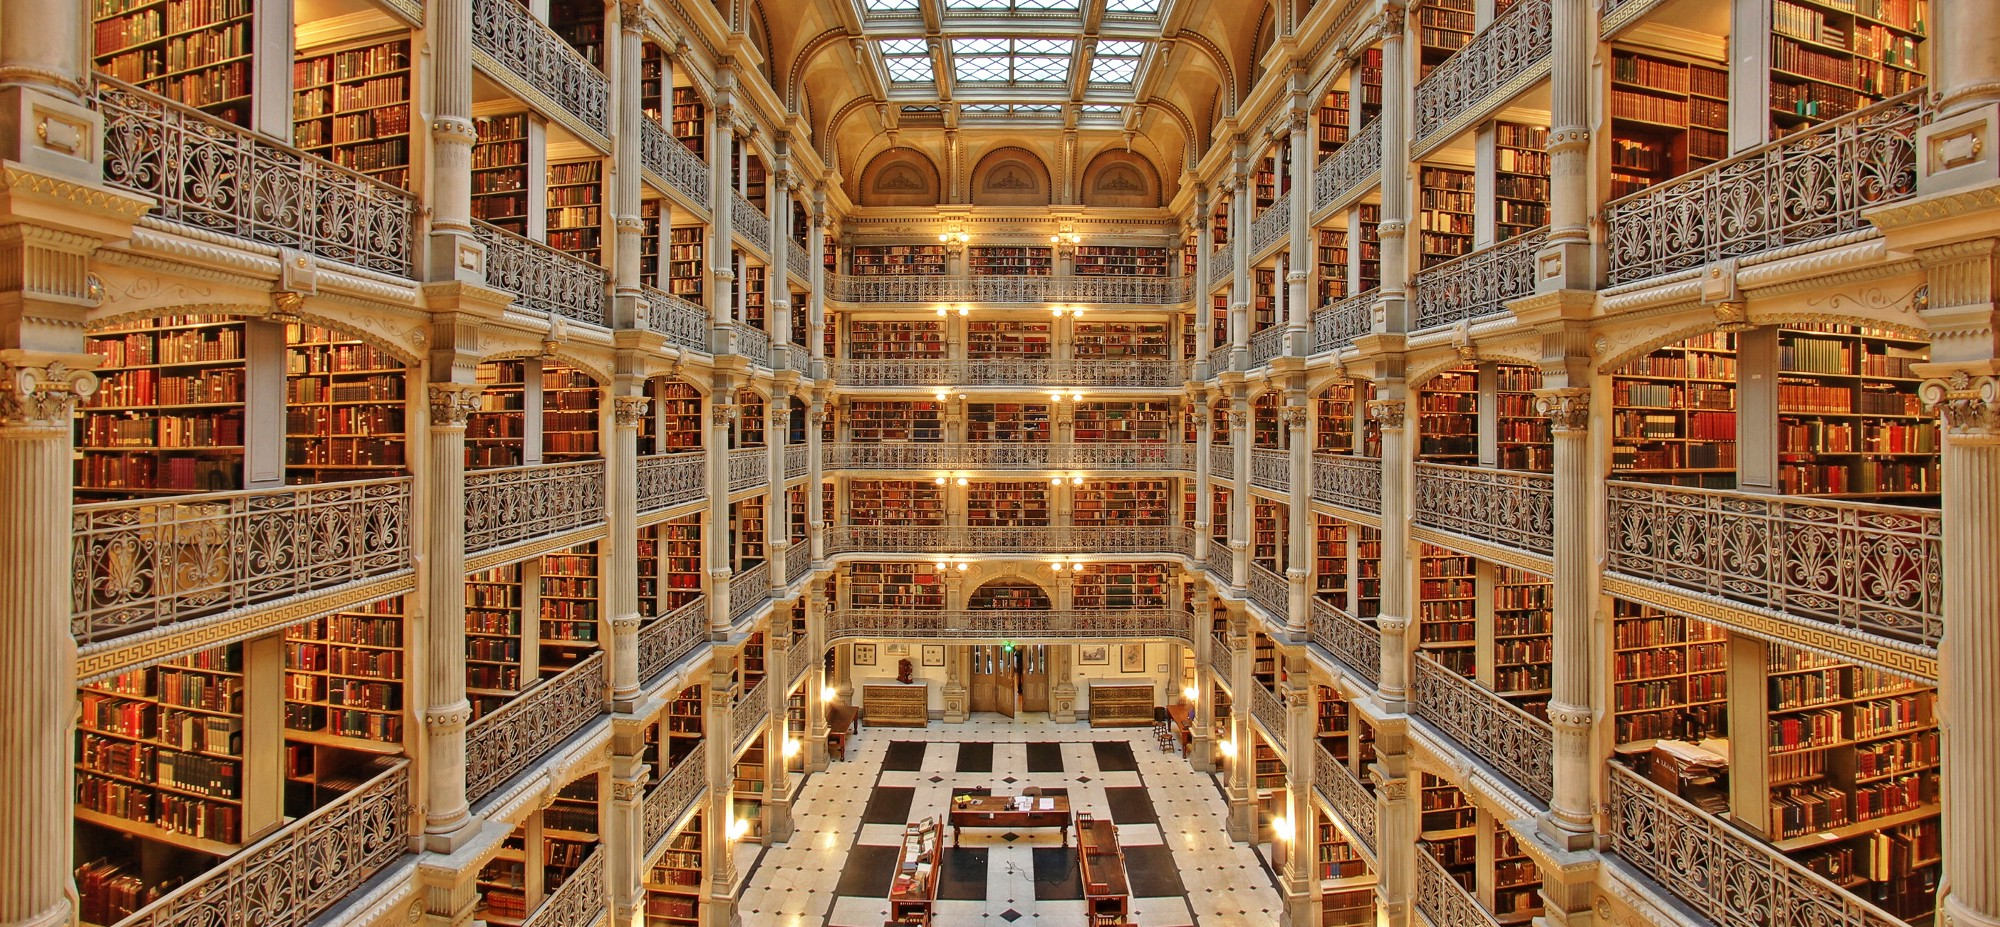 johns_hopkins_university_george_peabody_library_in_baltimore_67.jpeg